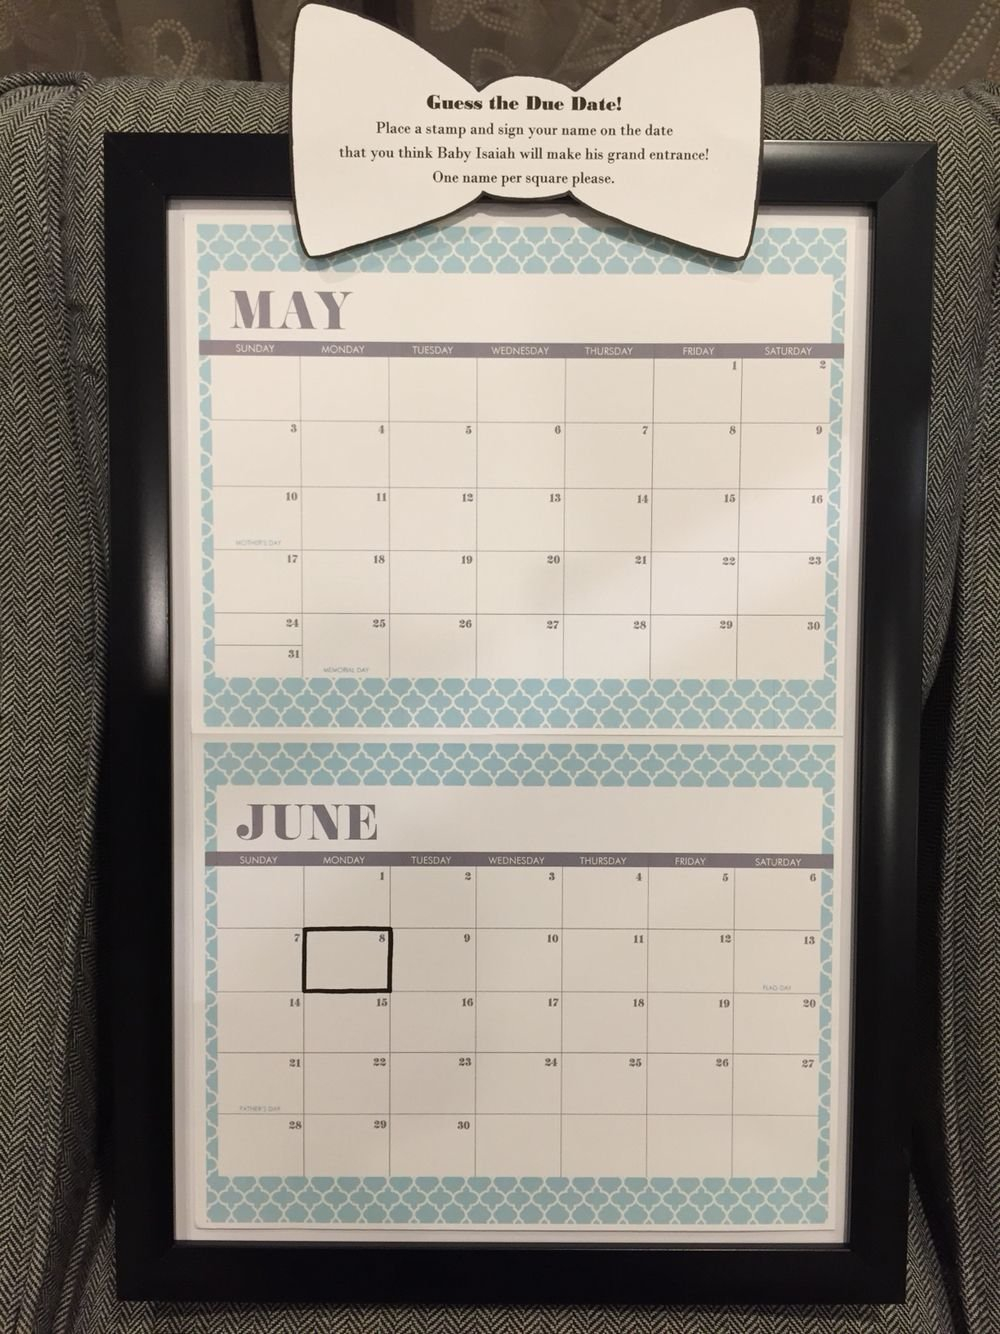 Guess The Due Date At Baby Shower. Guests Use Stamp To Guess Guess The Due Date Printable Calendar